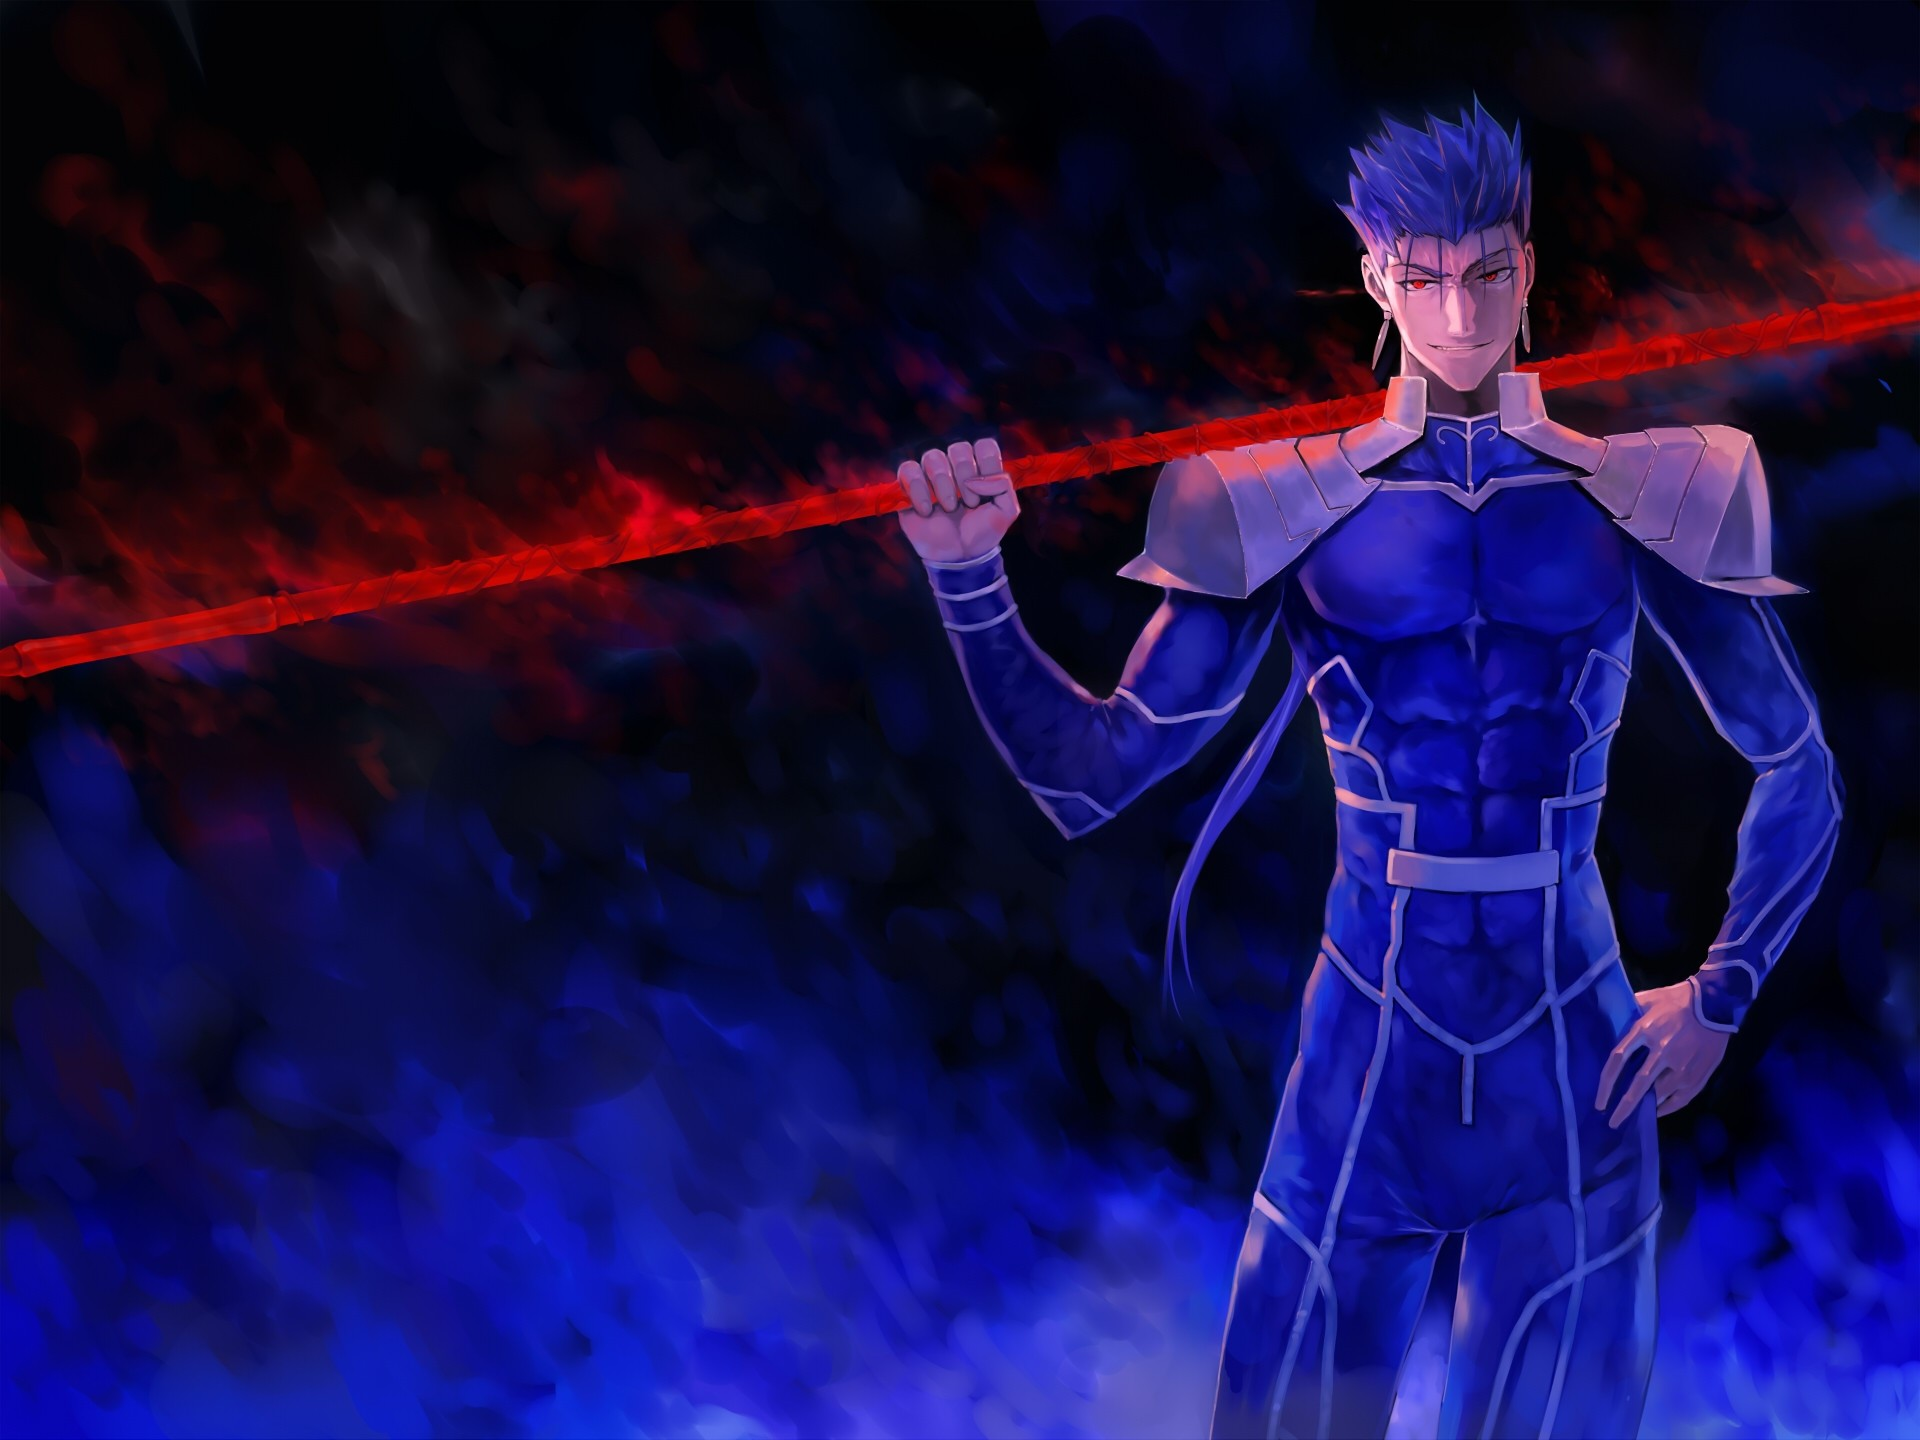 Fate/stay night, Fate/stay night: Unlimited Blade Works, Fate/